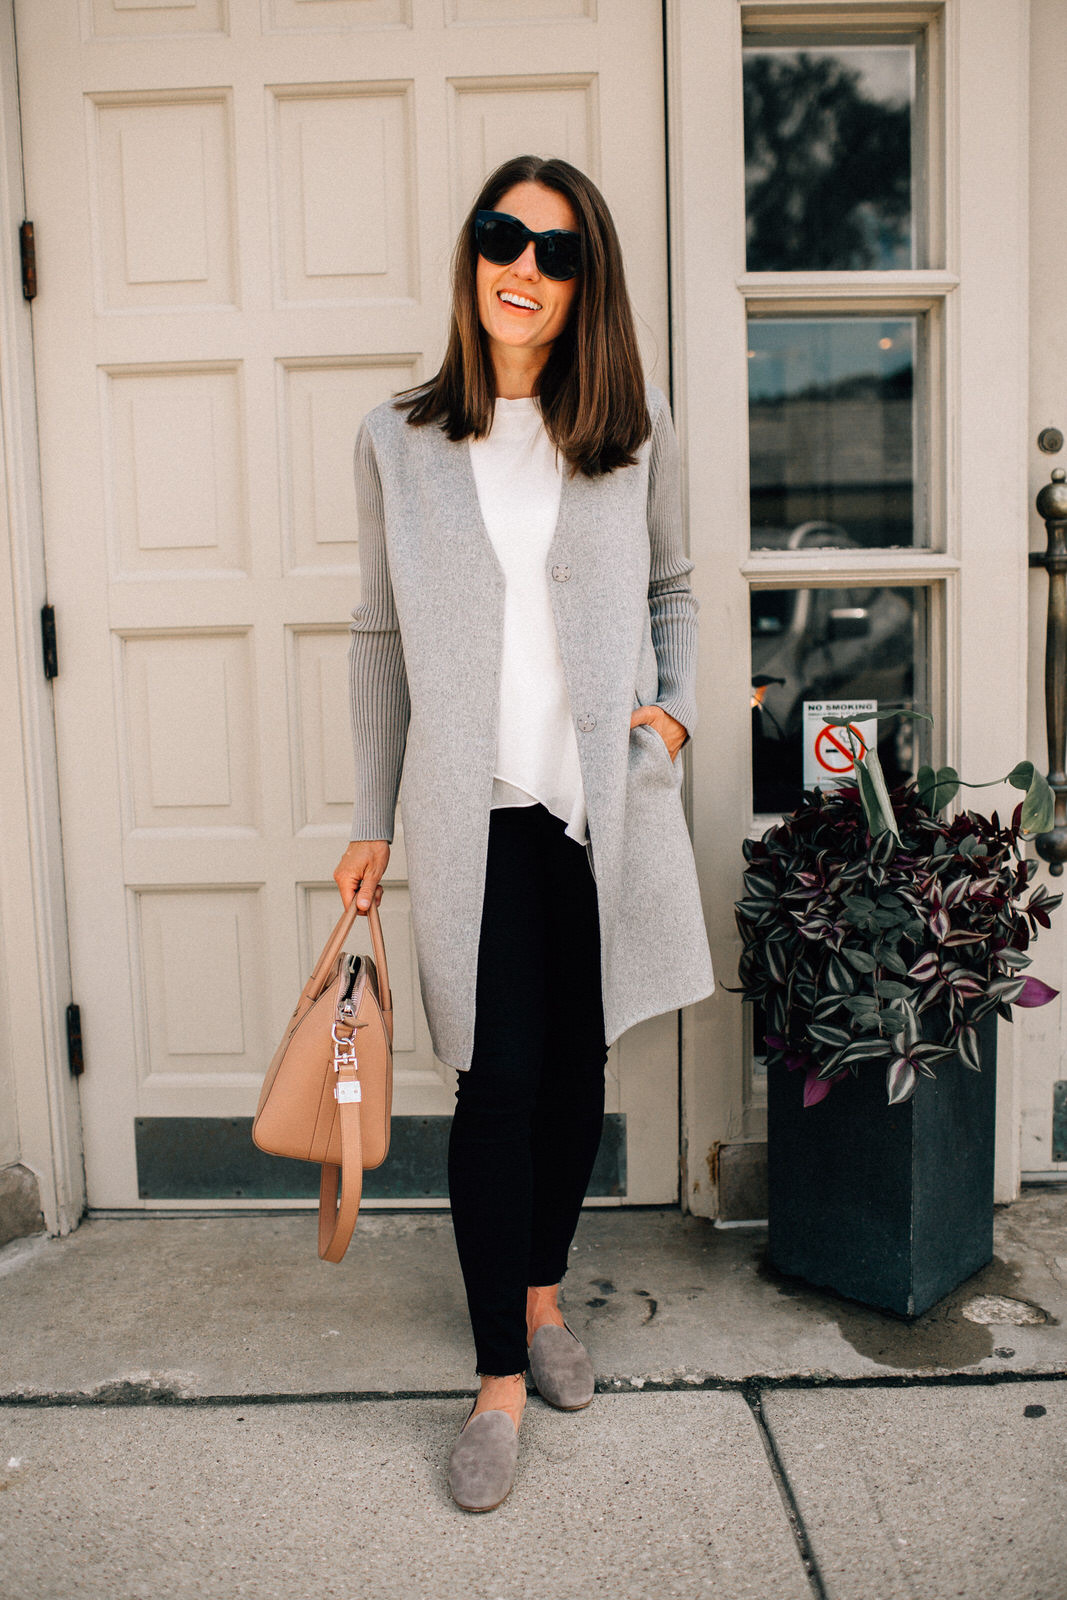 nordstrom anniversary sale outfit grey kenneth cole coat rag & bone jeans givenchy handbag